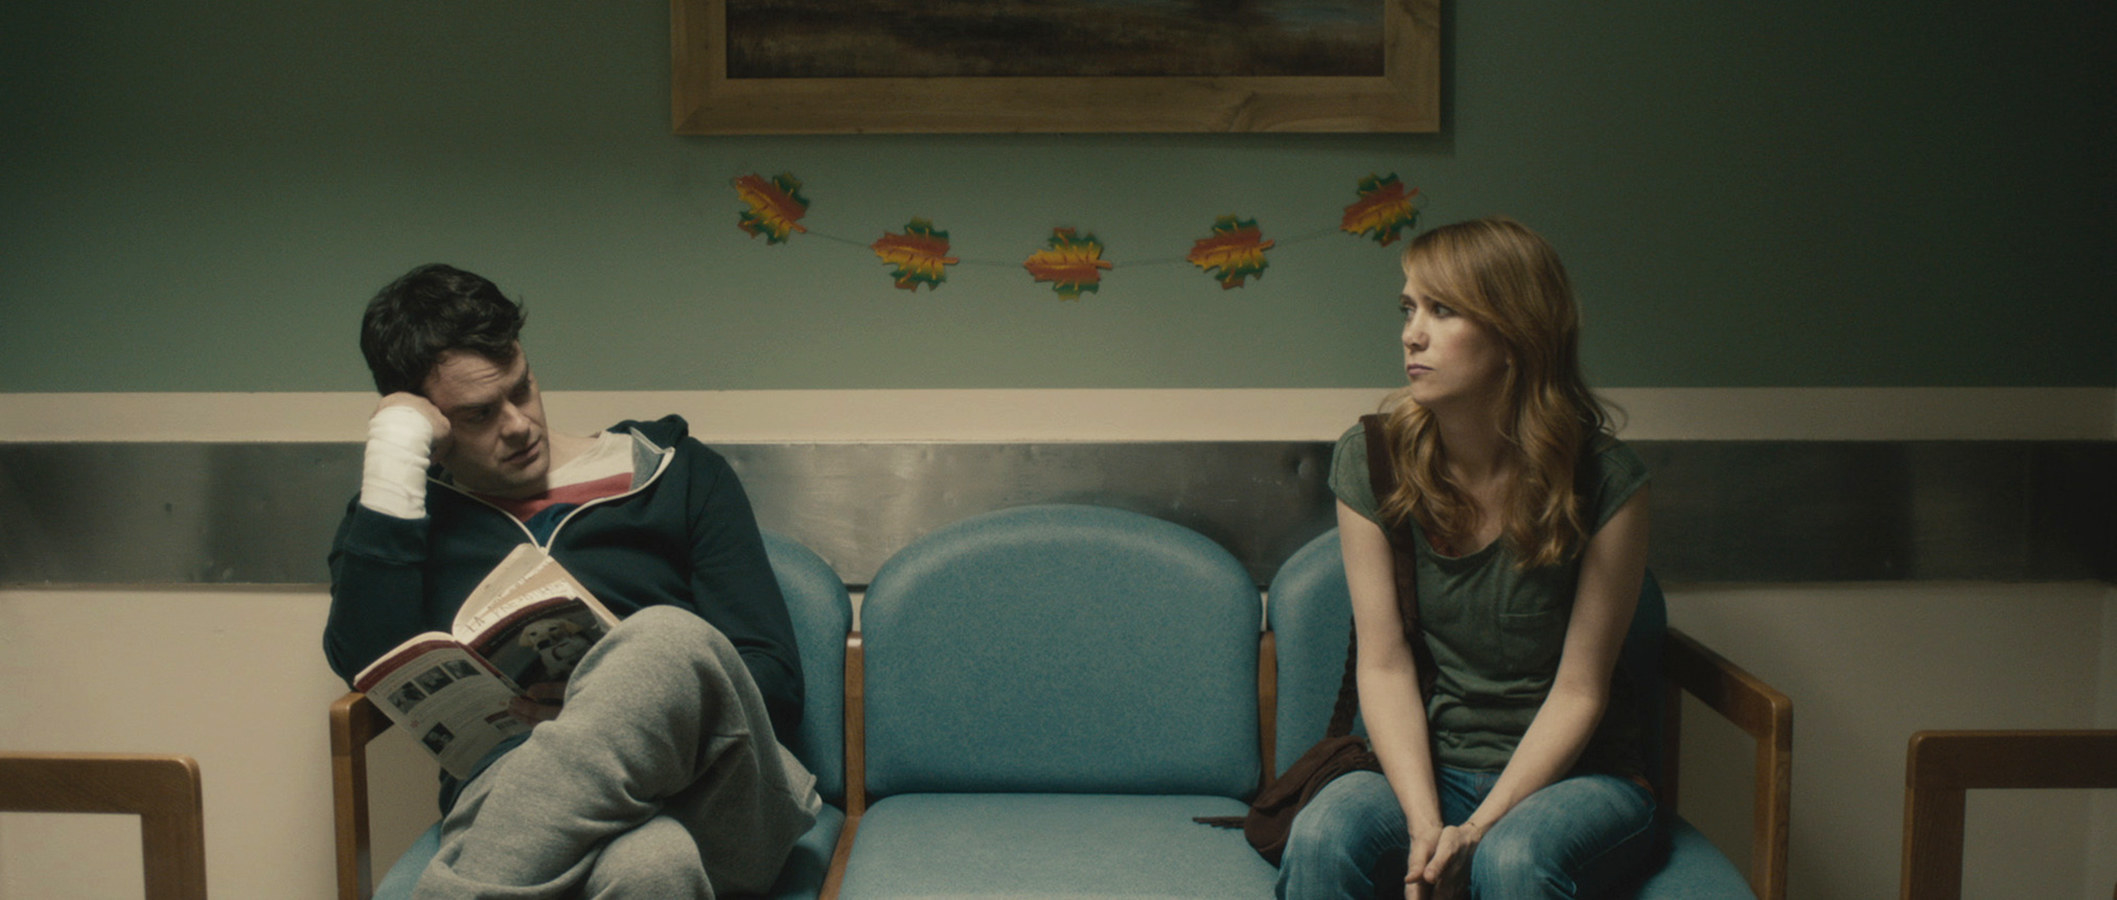 Bill Hader is holding a book and looking at Kristen Wiig.